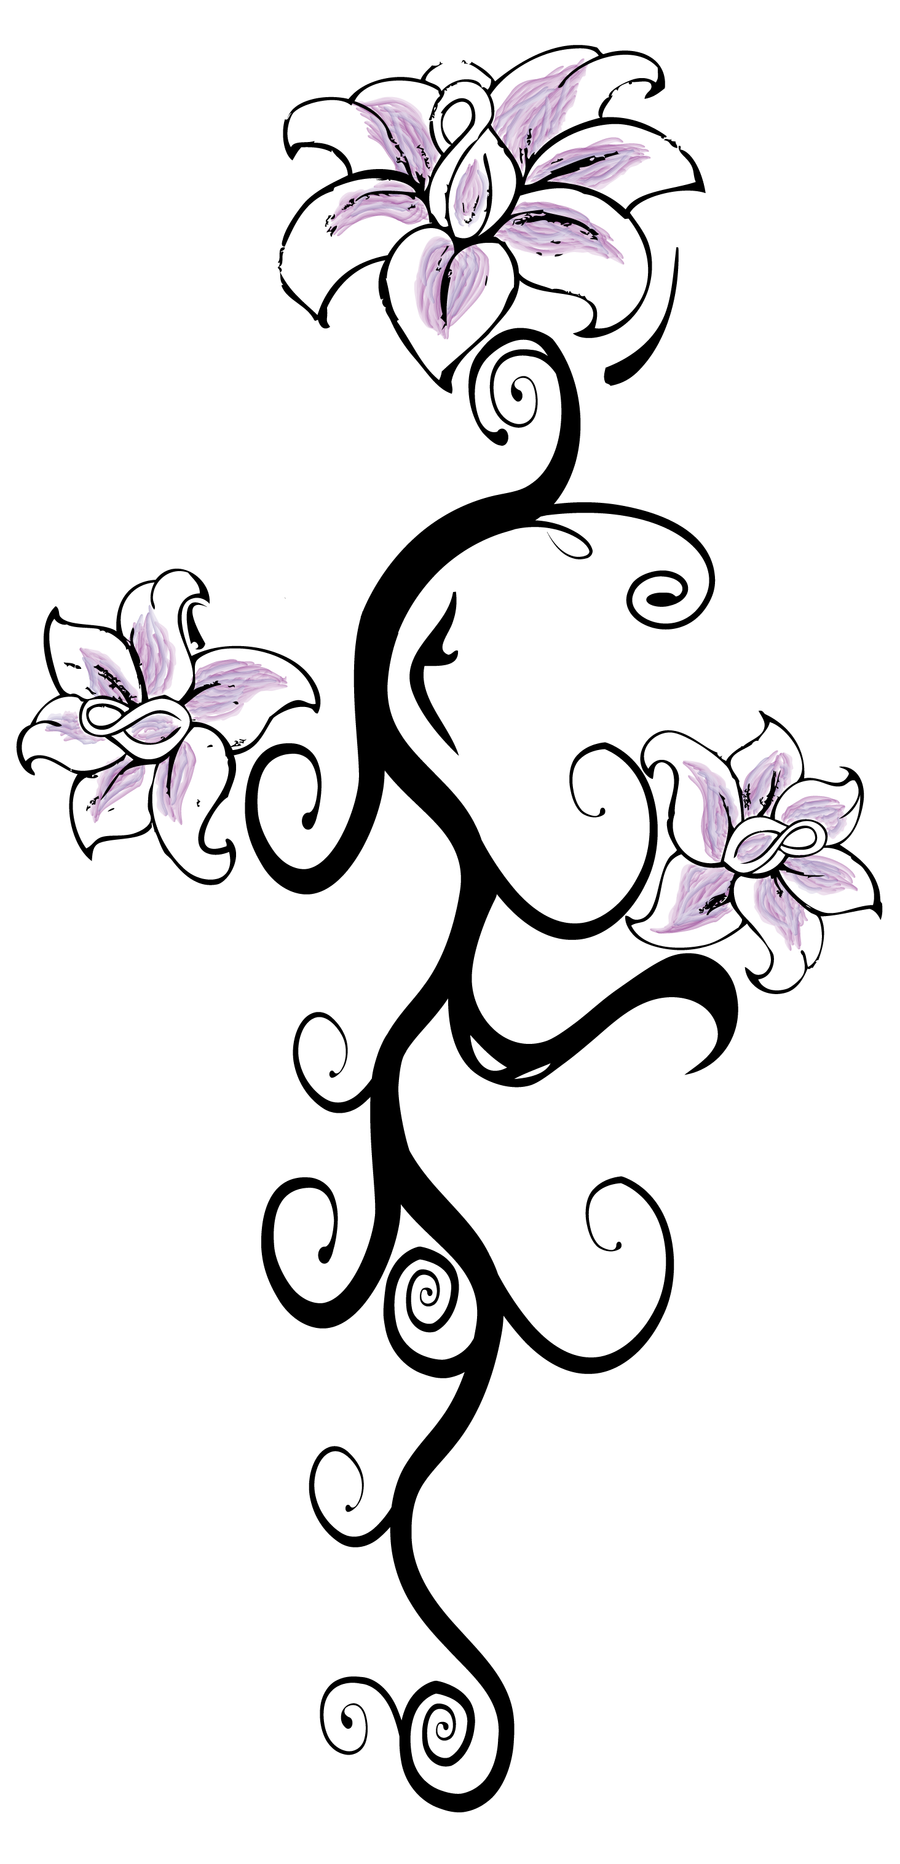 Flower back tattoo by ladysilver2267 on deviantart flower back tattoo by ladysilver2267 flower back tattoo by ladysilver2267 izmirmasajfo Images